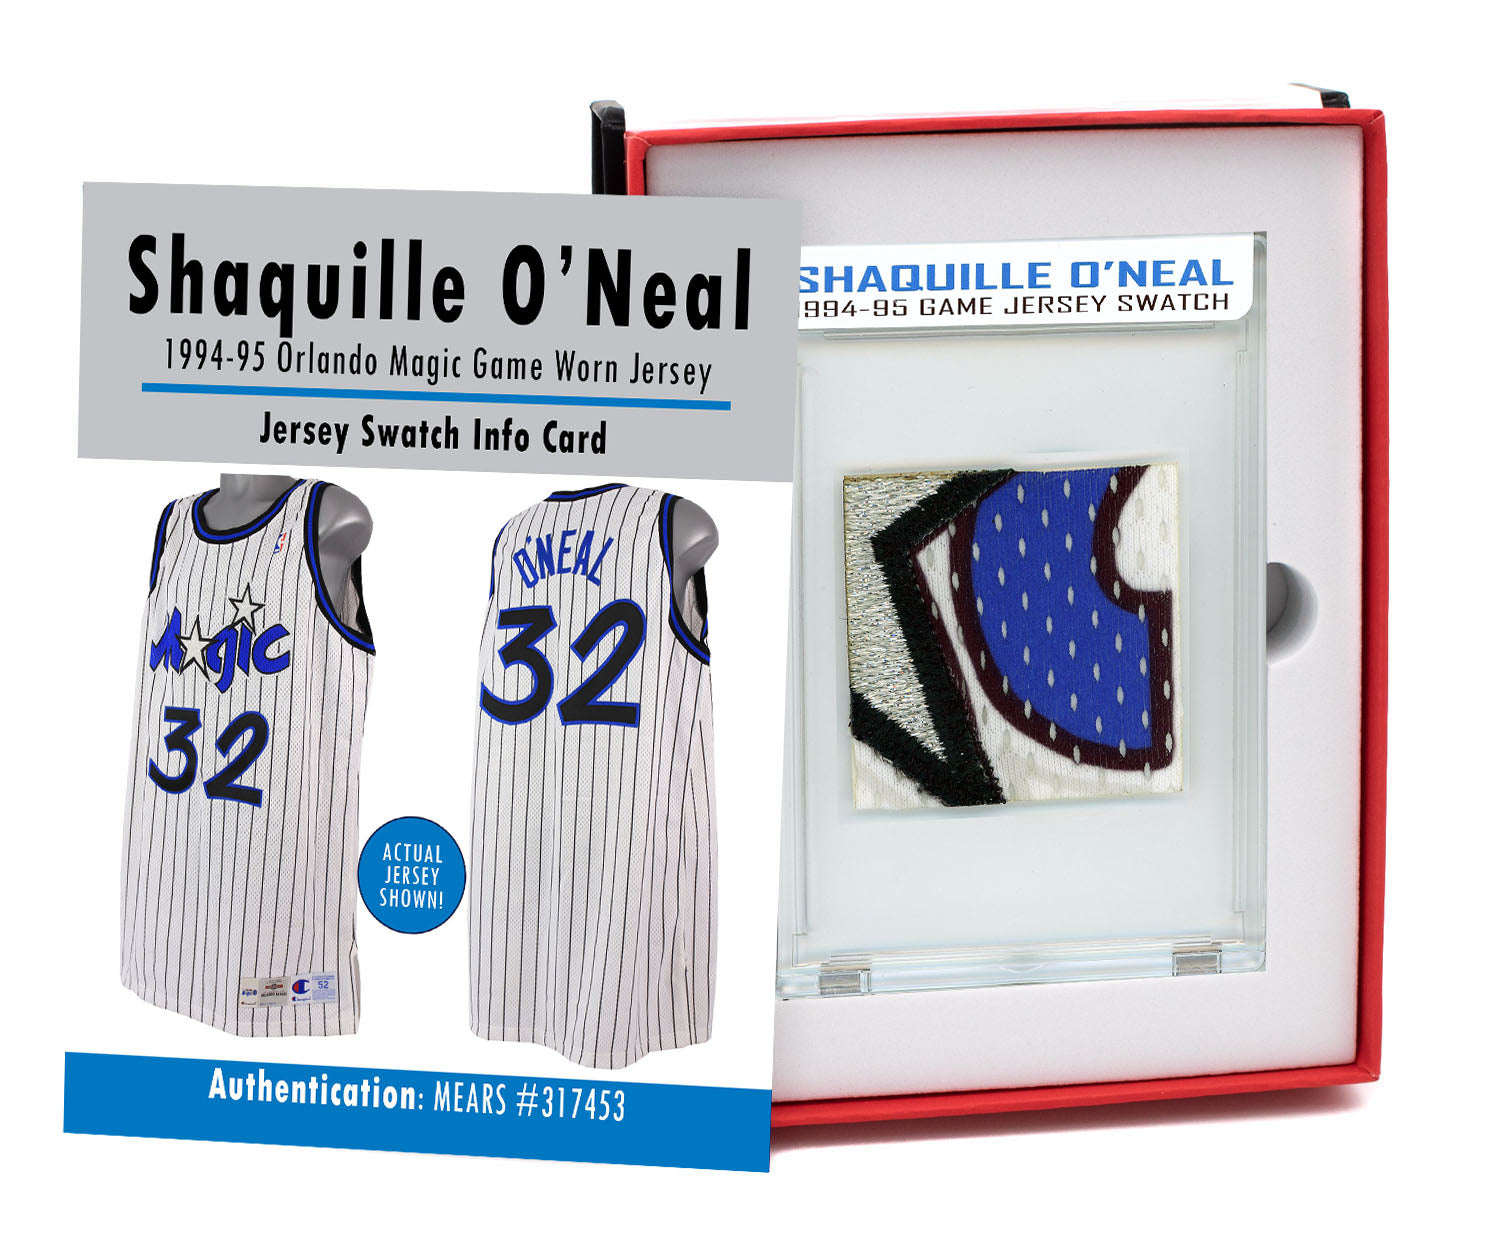 SHAQUILLE O'NEAL 1995 ORLANDO MAGIC GAME WORN JERSEY MYSTERY SEALED SWATCH BOX!